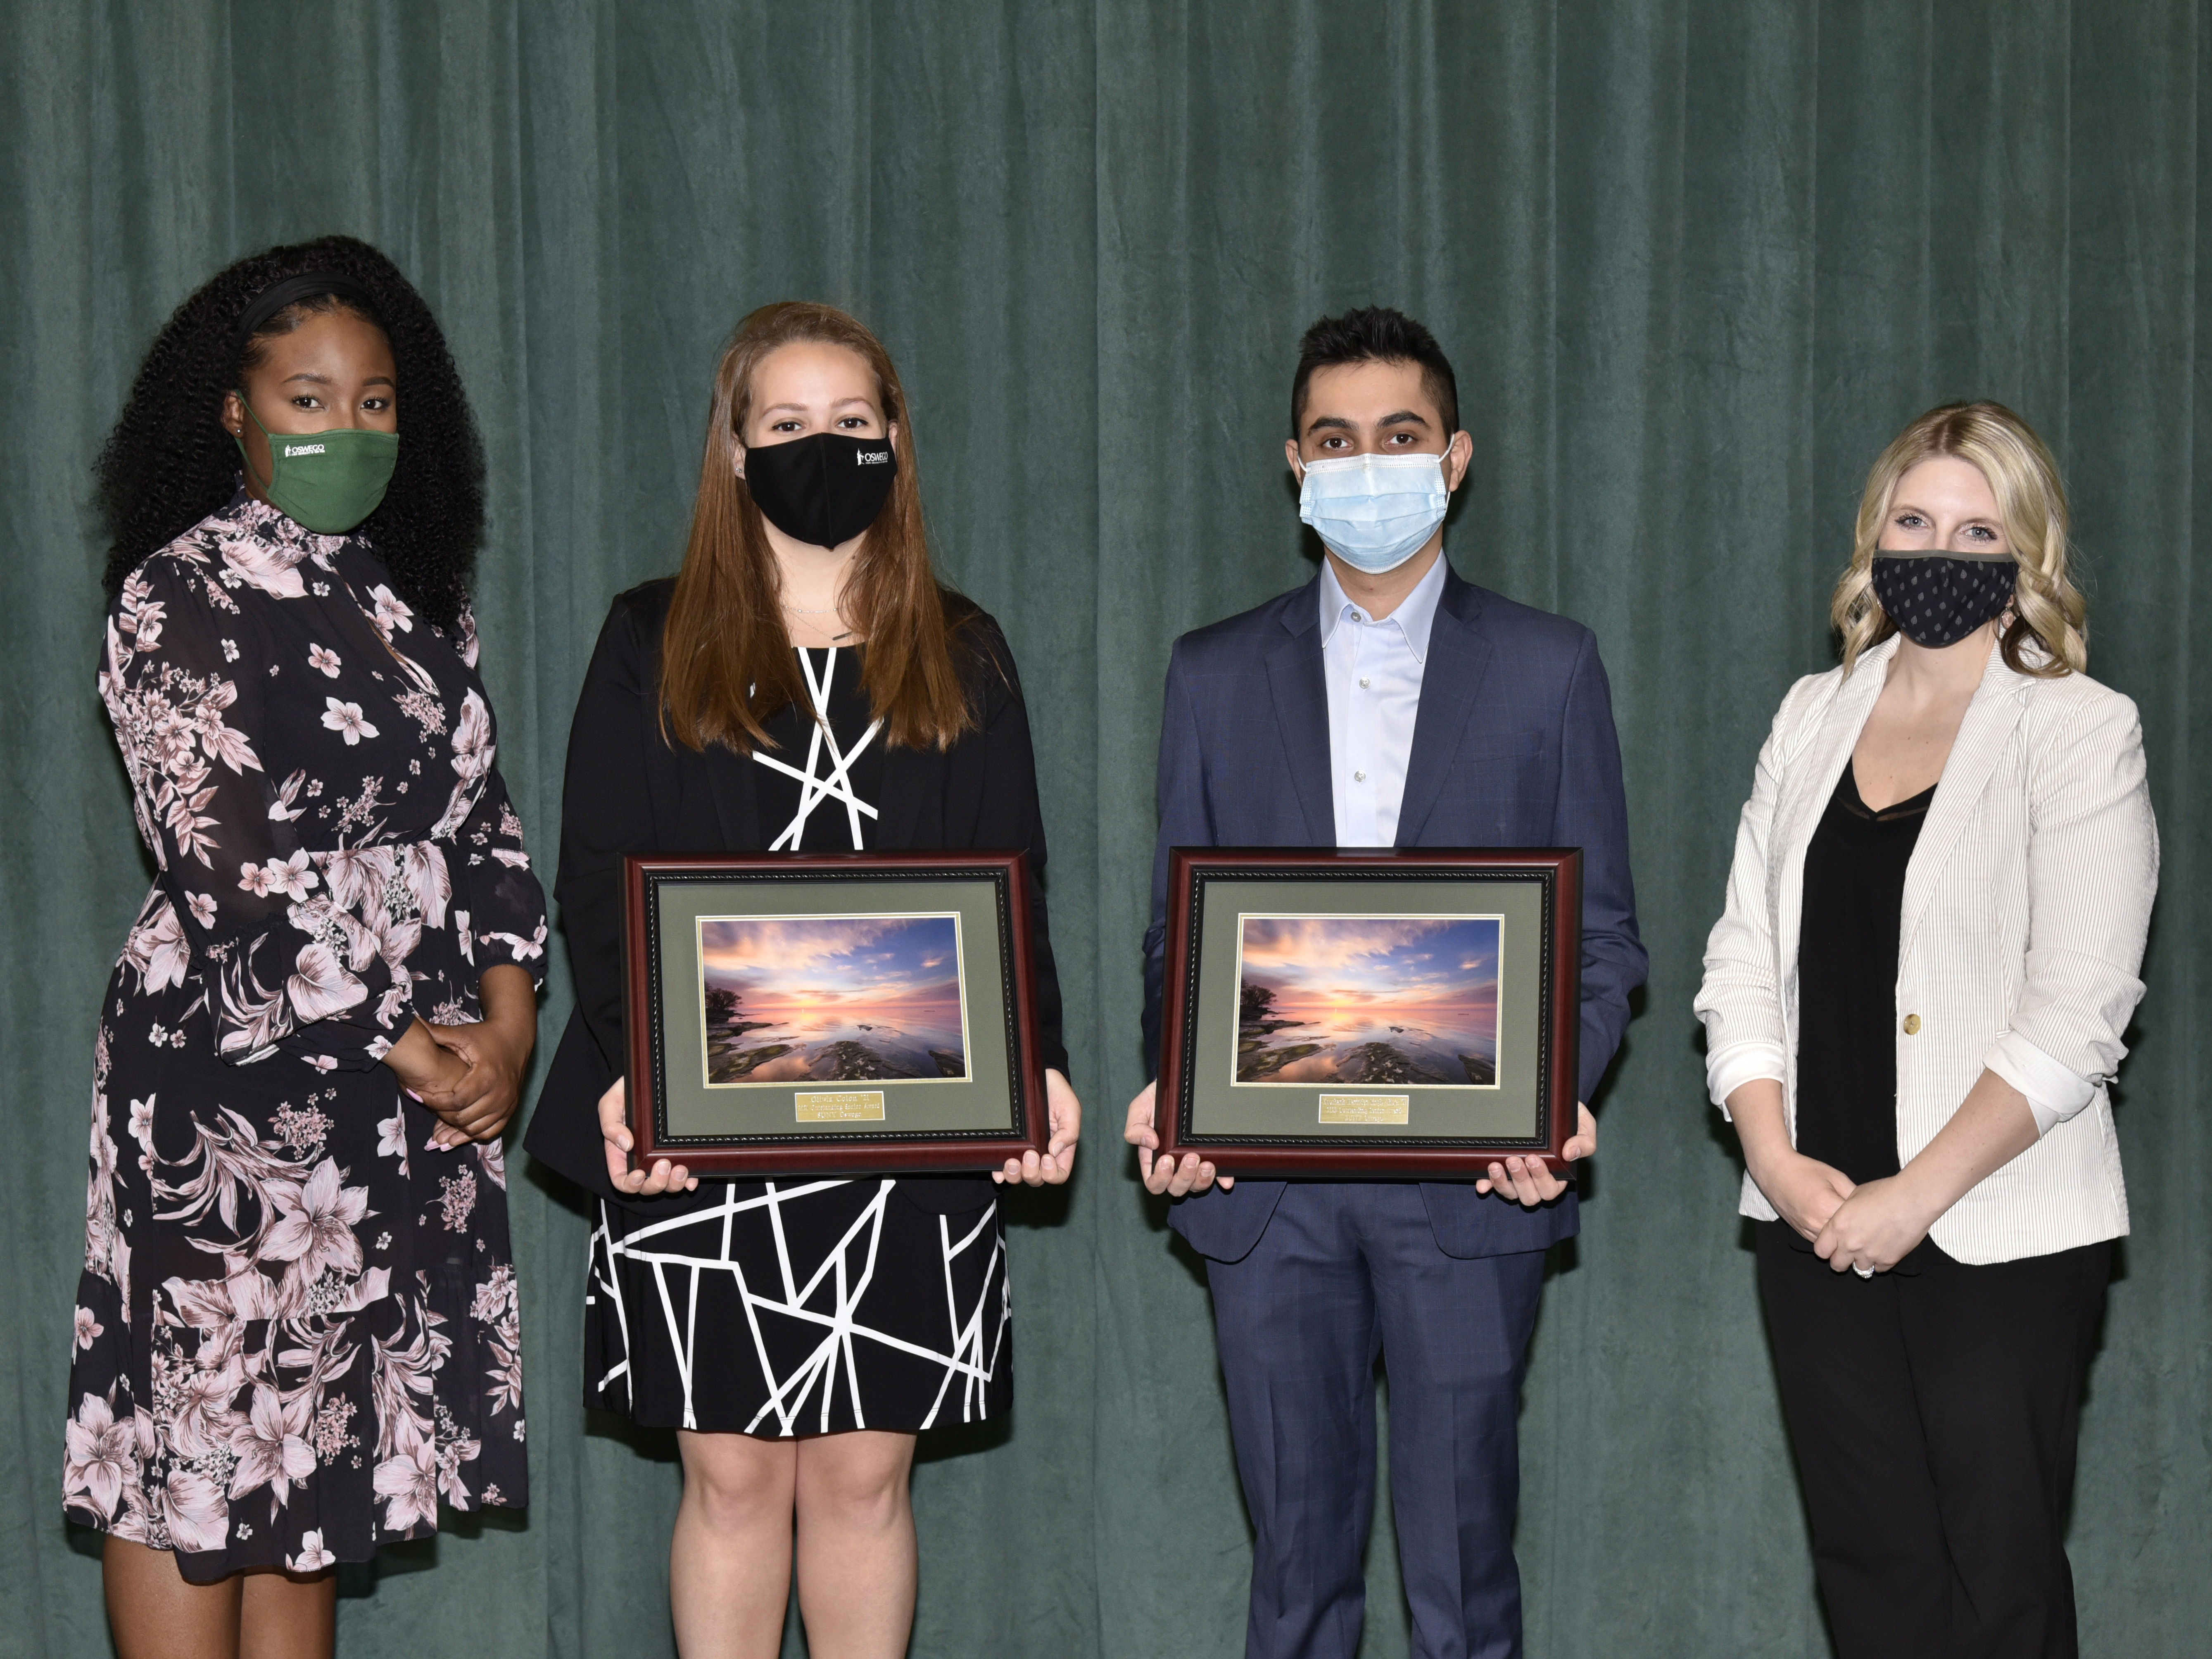 The Oswego Alumni Association's 2021 Outstanding Senior Award recipients Koushank Harinder Singh Ahuja and Olivia Colon (second and third from left) earn congratulations from Kerisha Lewis (left) and Laura Kelly (right) of the college's alumni relations team.